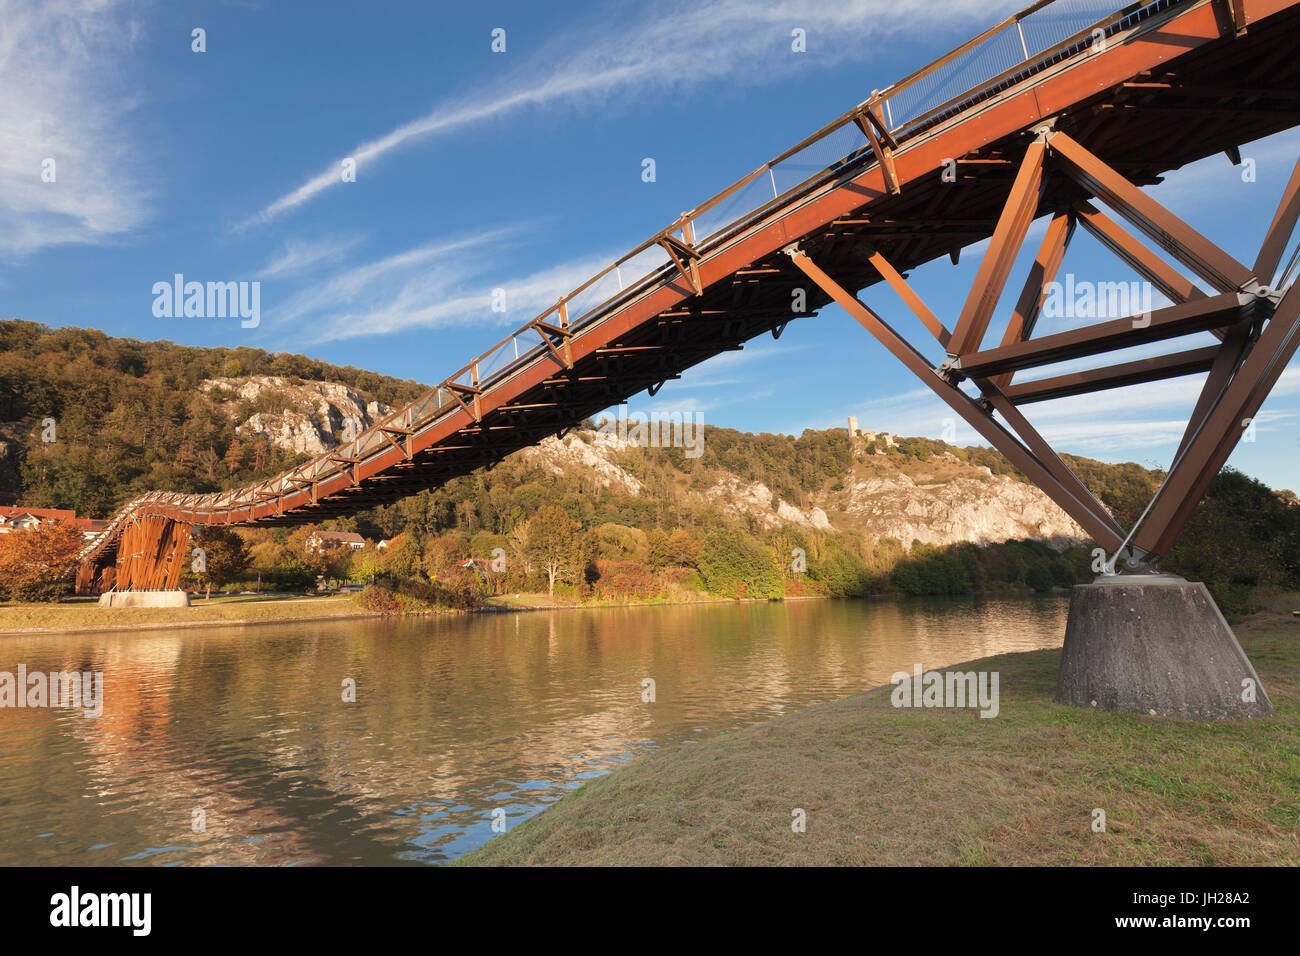 Wooden bridgeTatzelwurm, Main-Donau-Kanal canal, Essing, nature park, Altmuehltal Valley, Bavaria, Germany, Europe - Stock Image